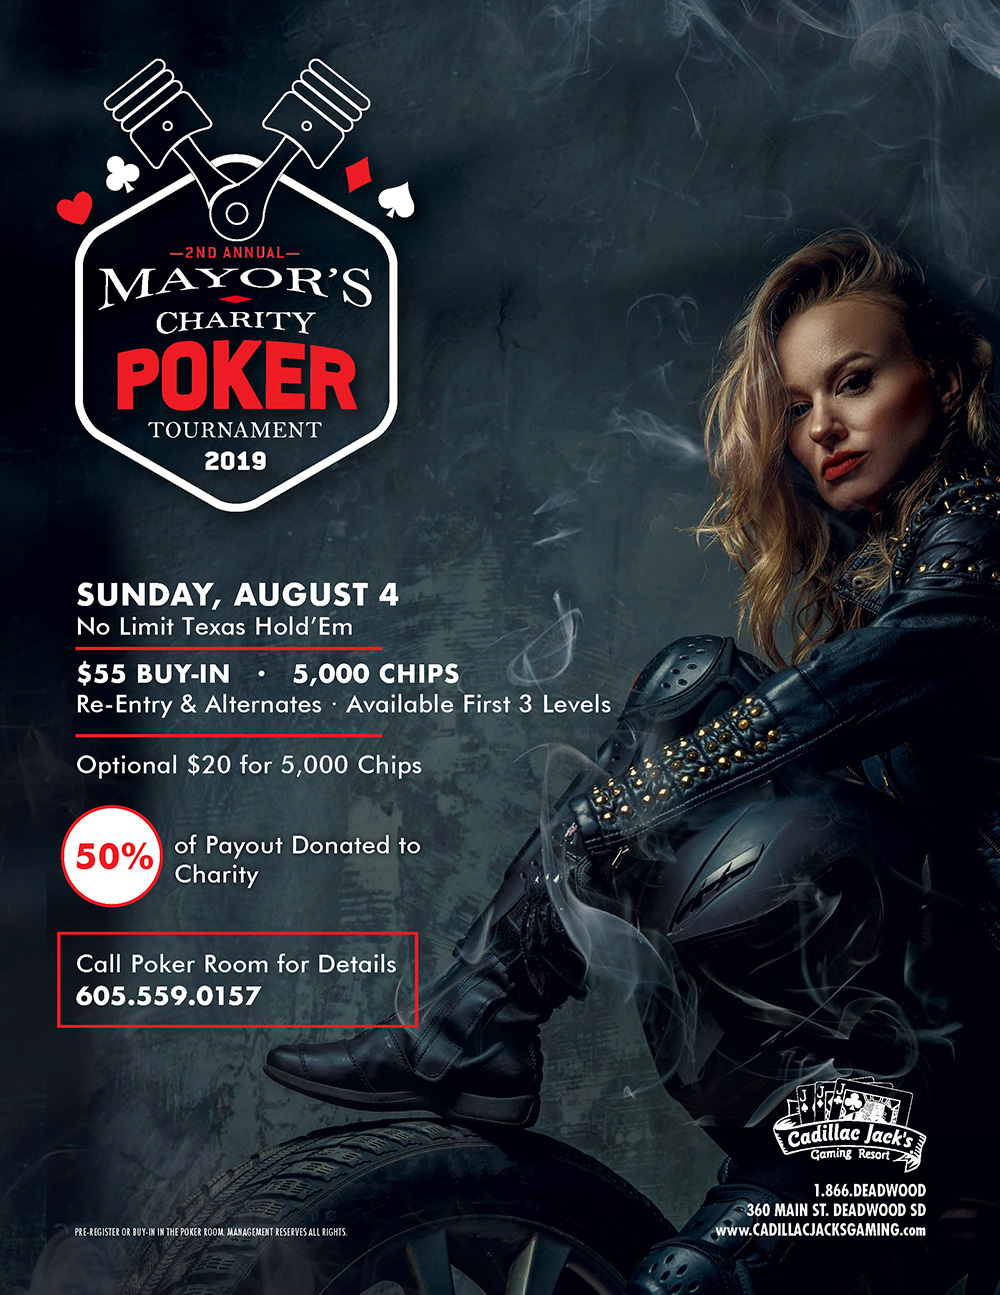 2nd Annual Mayor's Charity Poker Tournament 2019. Sunday, August 4. No Limit Texas Hold'em $55 Buy-in 5000 Chips. Re-entry and Alternates. Available First 3 Levels. Optional $20 for 5000 Chips. 50% of Payout Donated to Charity. Call Poker Room for Details 605-559-0157. Pre-register or buy-in in the poker room management reserves all rights.